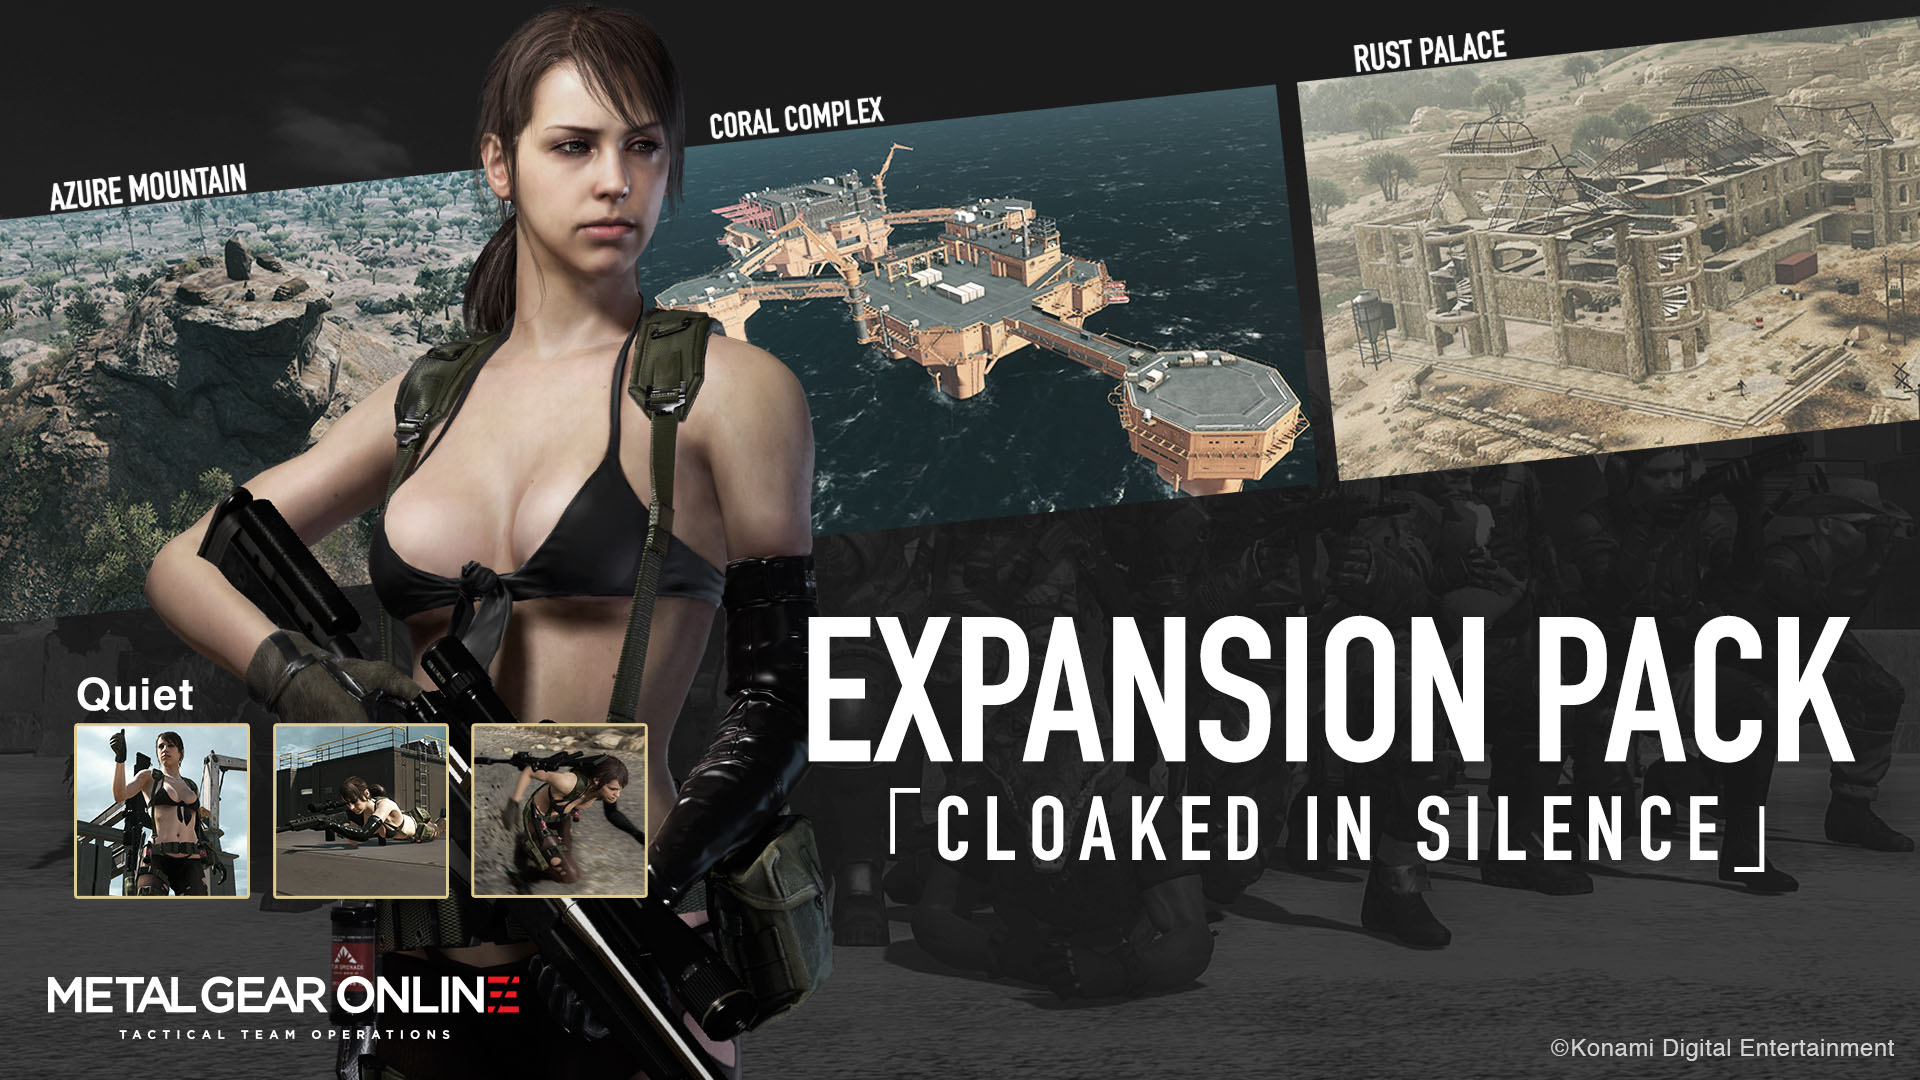 MGO-Cloaked-in-Silence-Dated